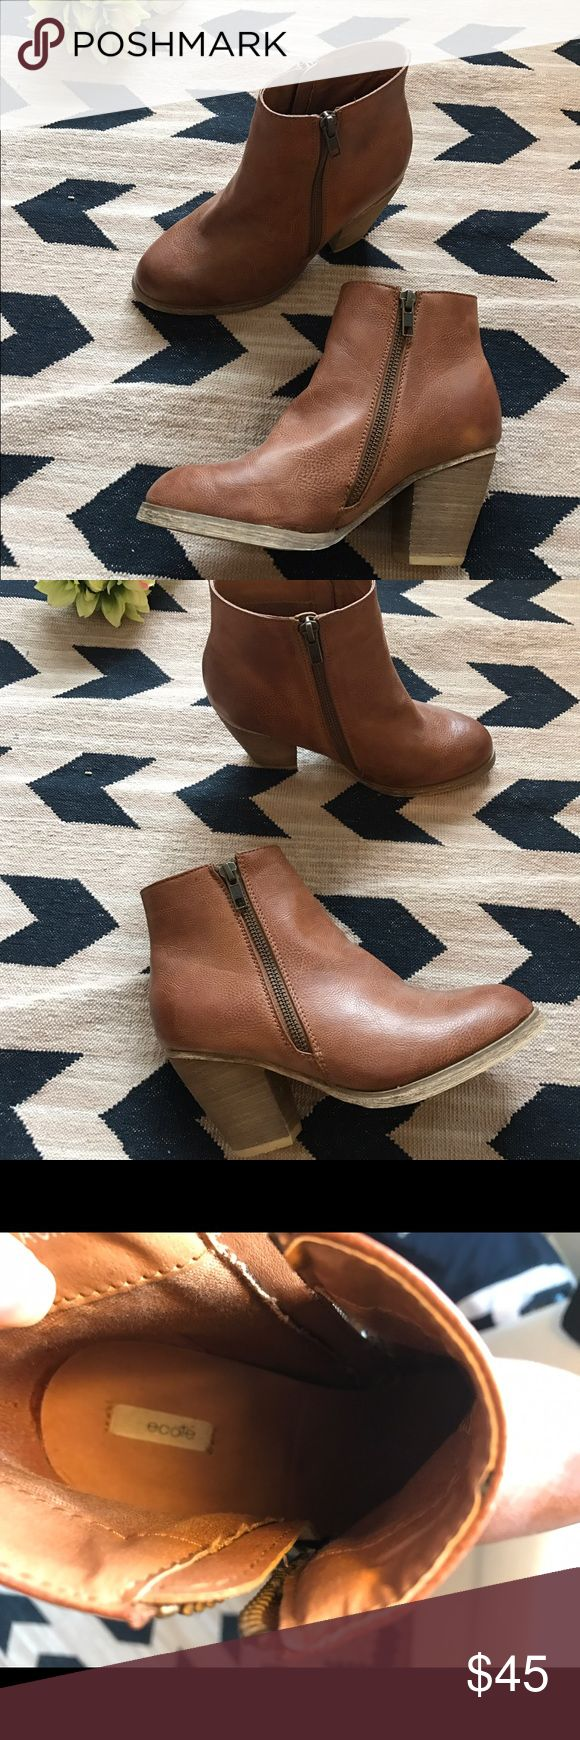 Urban Outfitters brown booties. Urban Outfitters brown booties.  Brand is Ecote.  Faux Leather. Urban Outfitters Shoes Ankle Boots & Booties